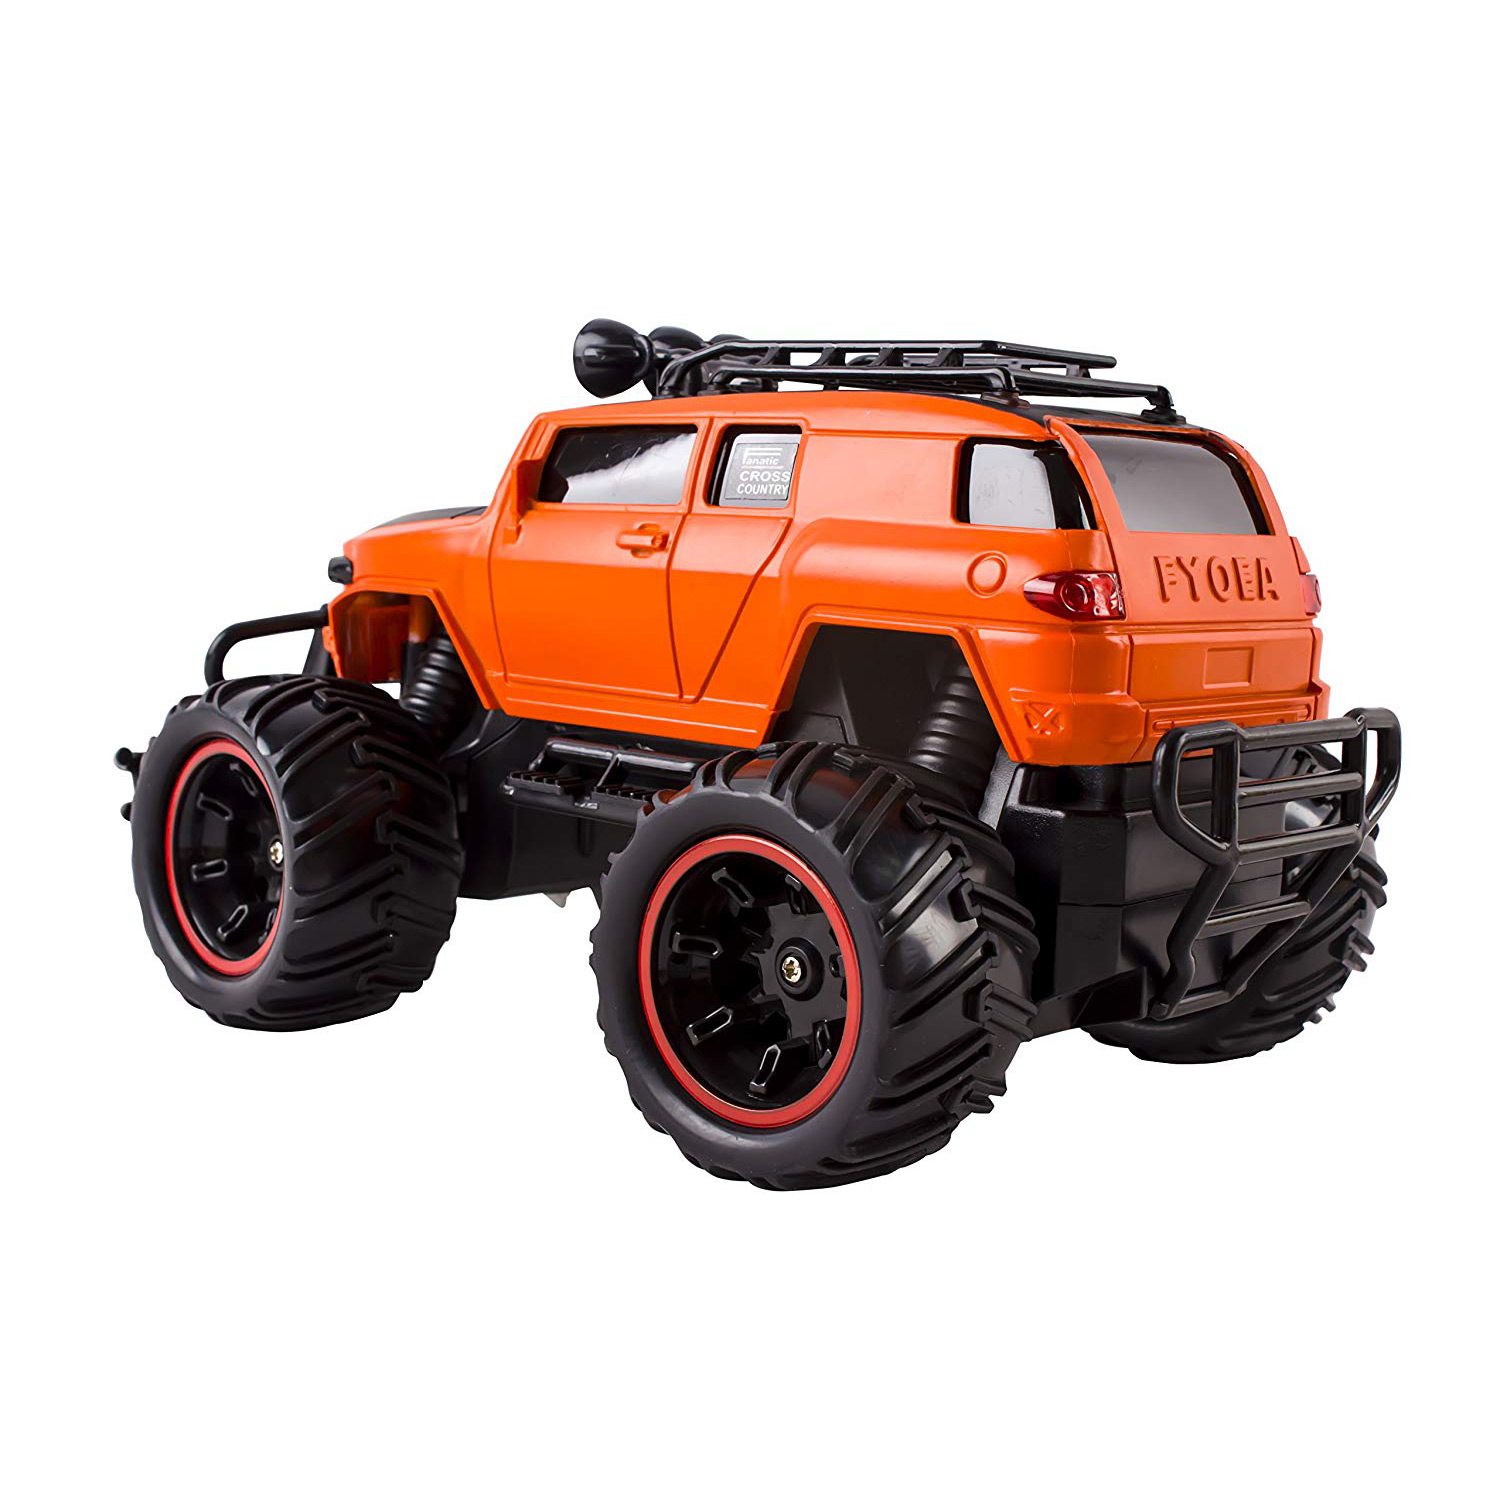 RC Monster Truck Toy Remote Control RTR Electric Vehicle Off Road High Speed Race Car 120 Scale Radio Controlled Orange Color